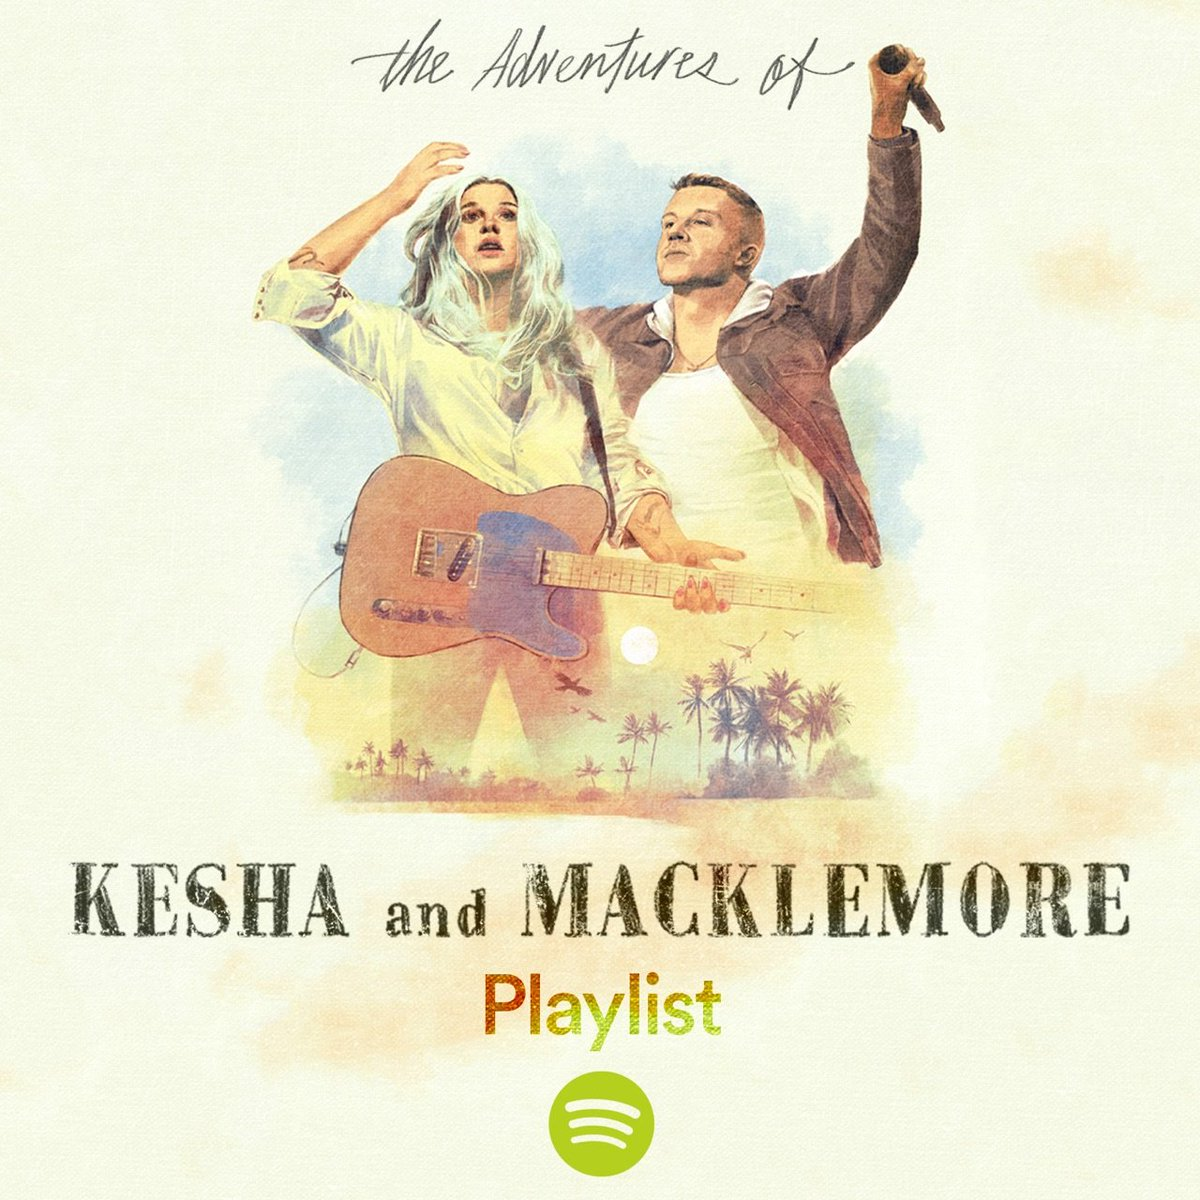 Listen to The Adventures of @KeshaRose and Macklemore Tour playlist on @Spotify https://t.co/nD30CjMpyH https://t.co/vCpXGYl4yu